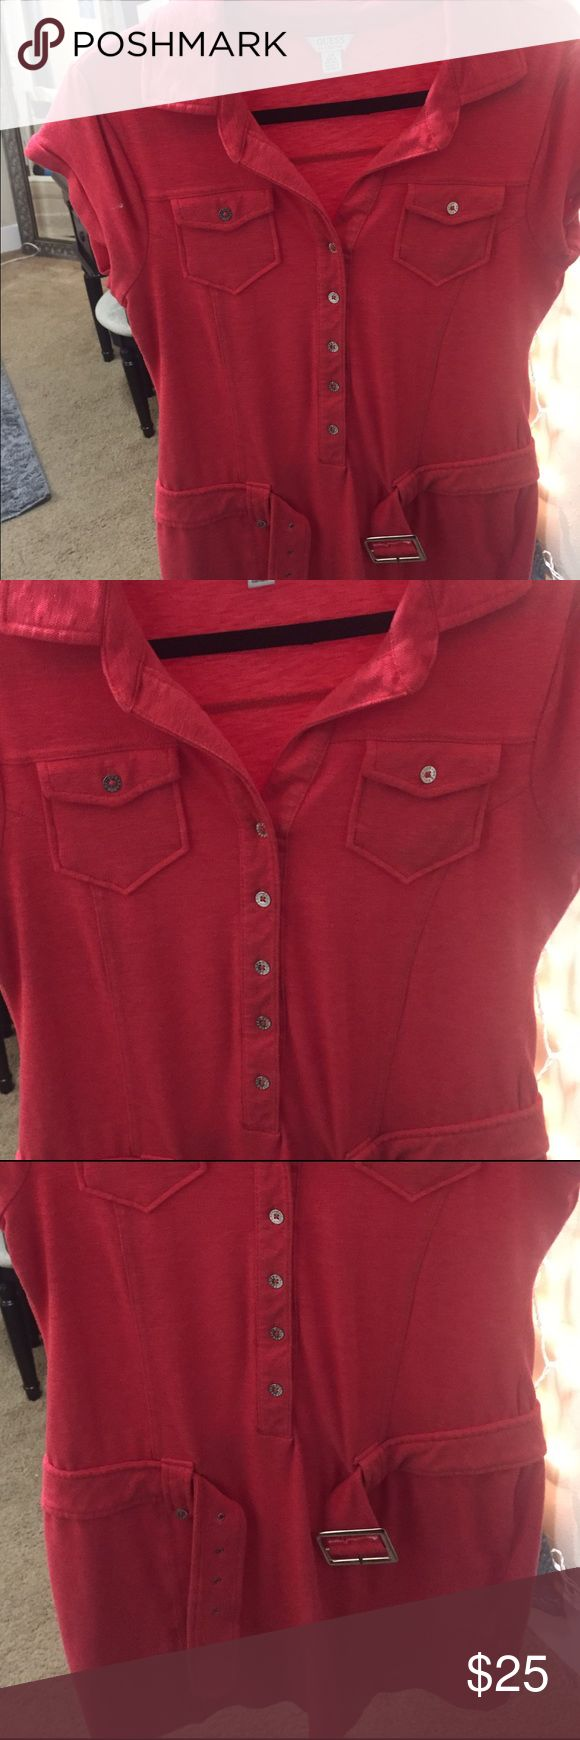 G by guess red dress 99